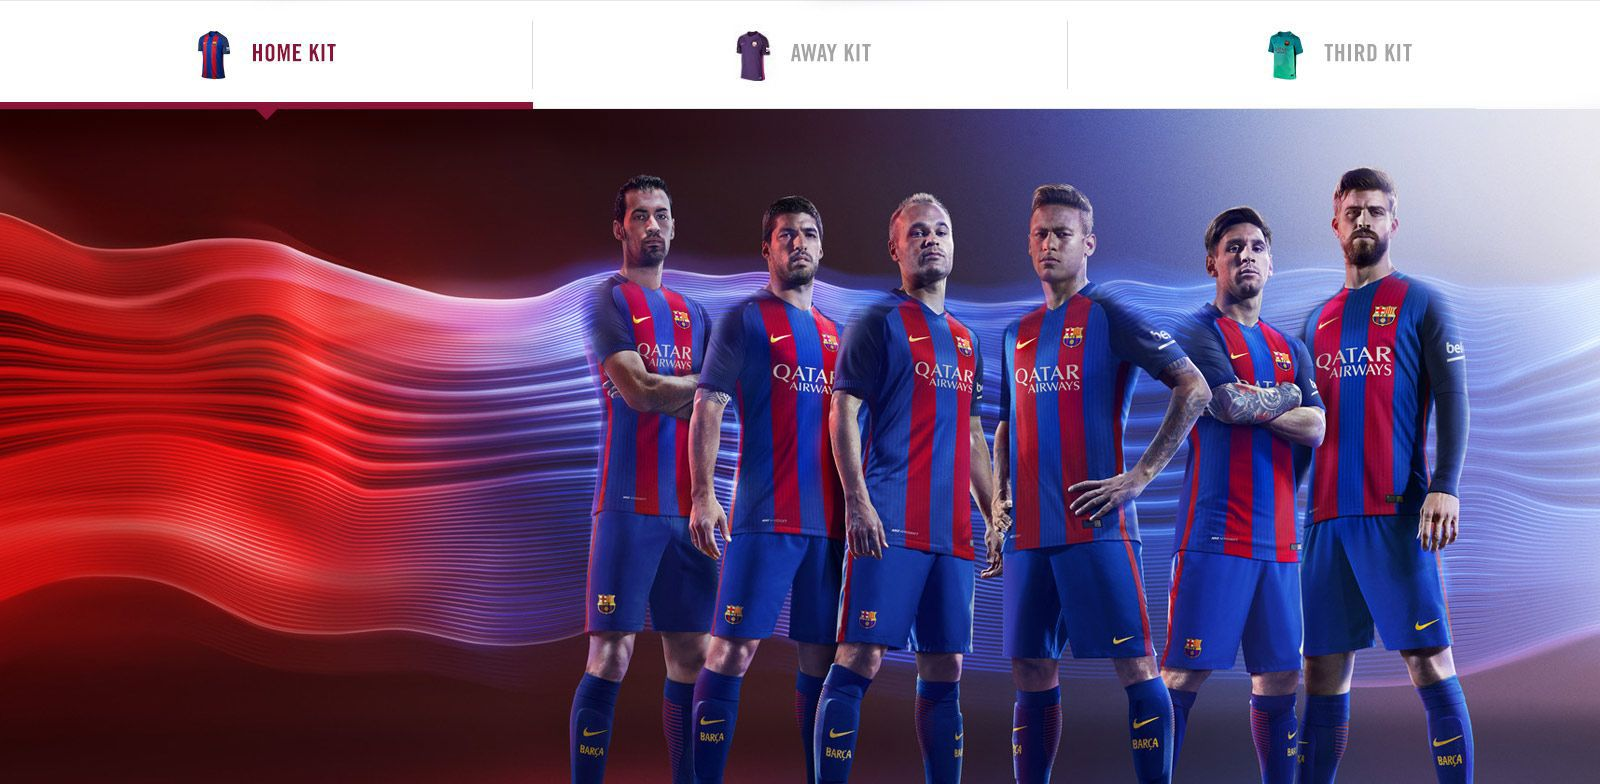 HQ FC Barcelona Wallpapers | File 166.92Kb